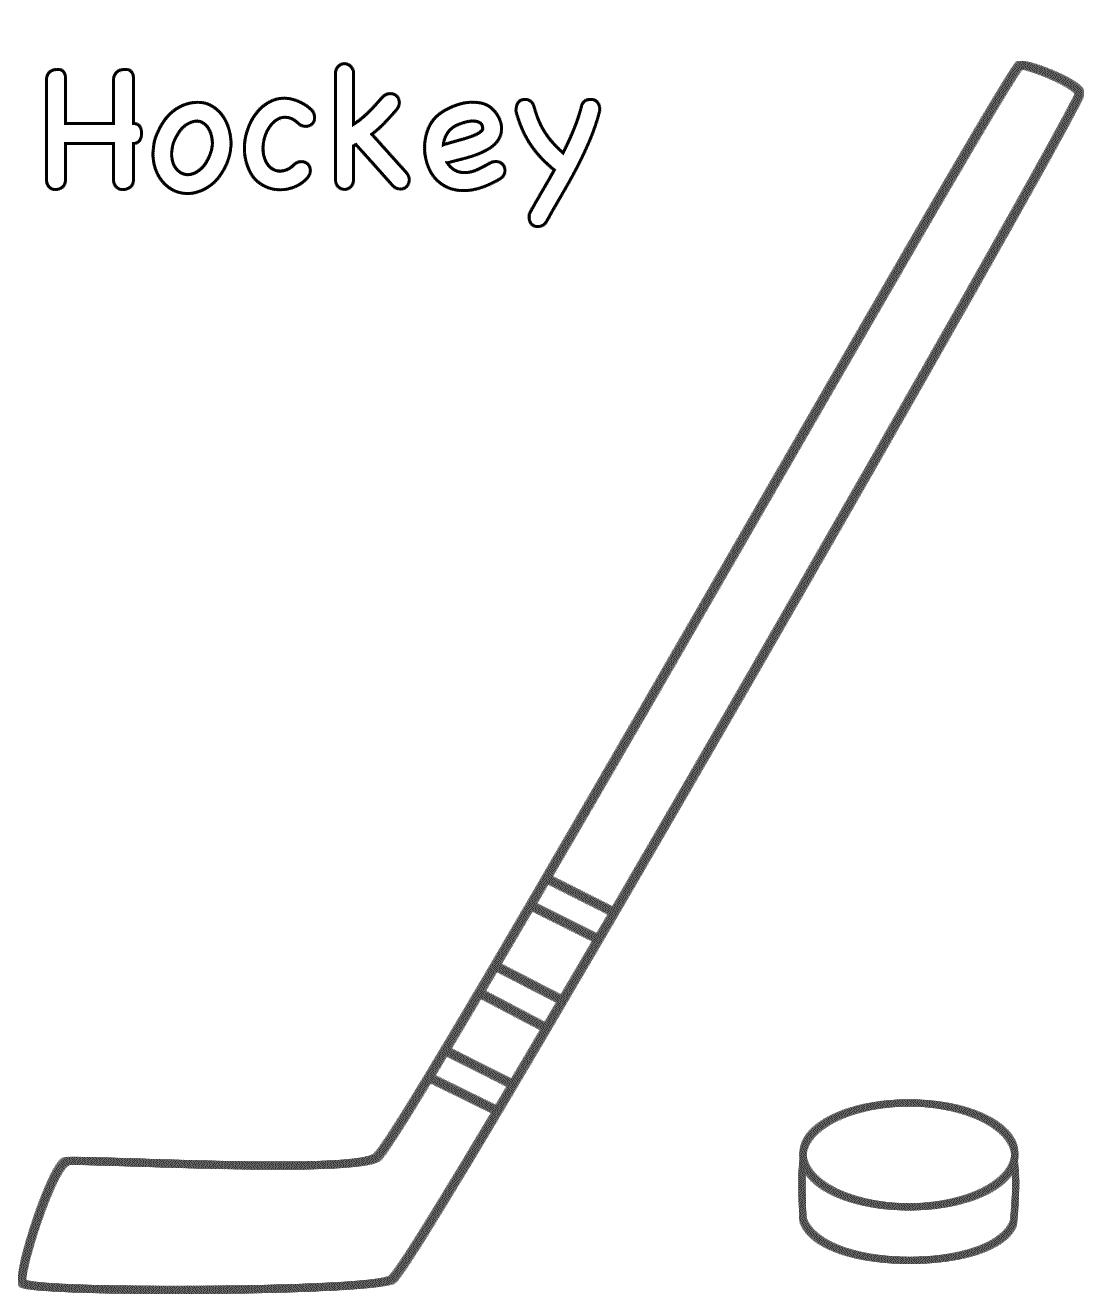 Hockey Sticks Crossed - Clipart library. hockey_stick_puck.png